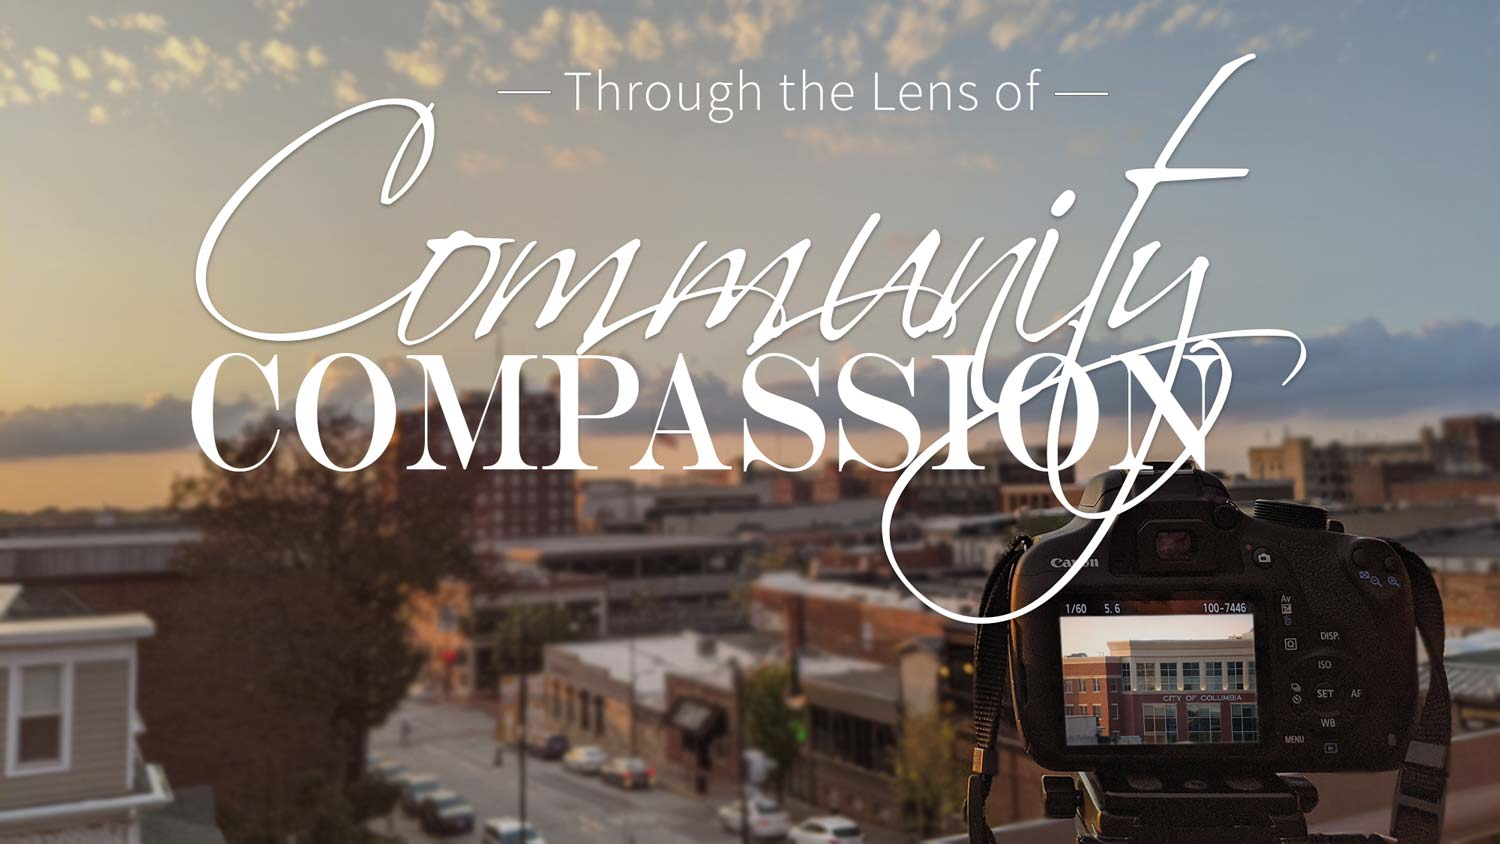 Through the Lens of Community Compassion